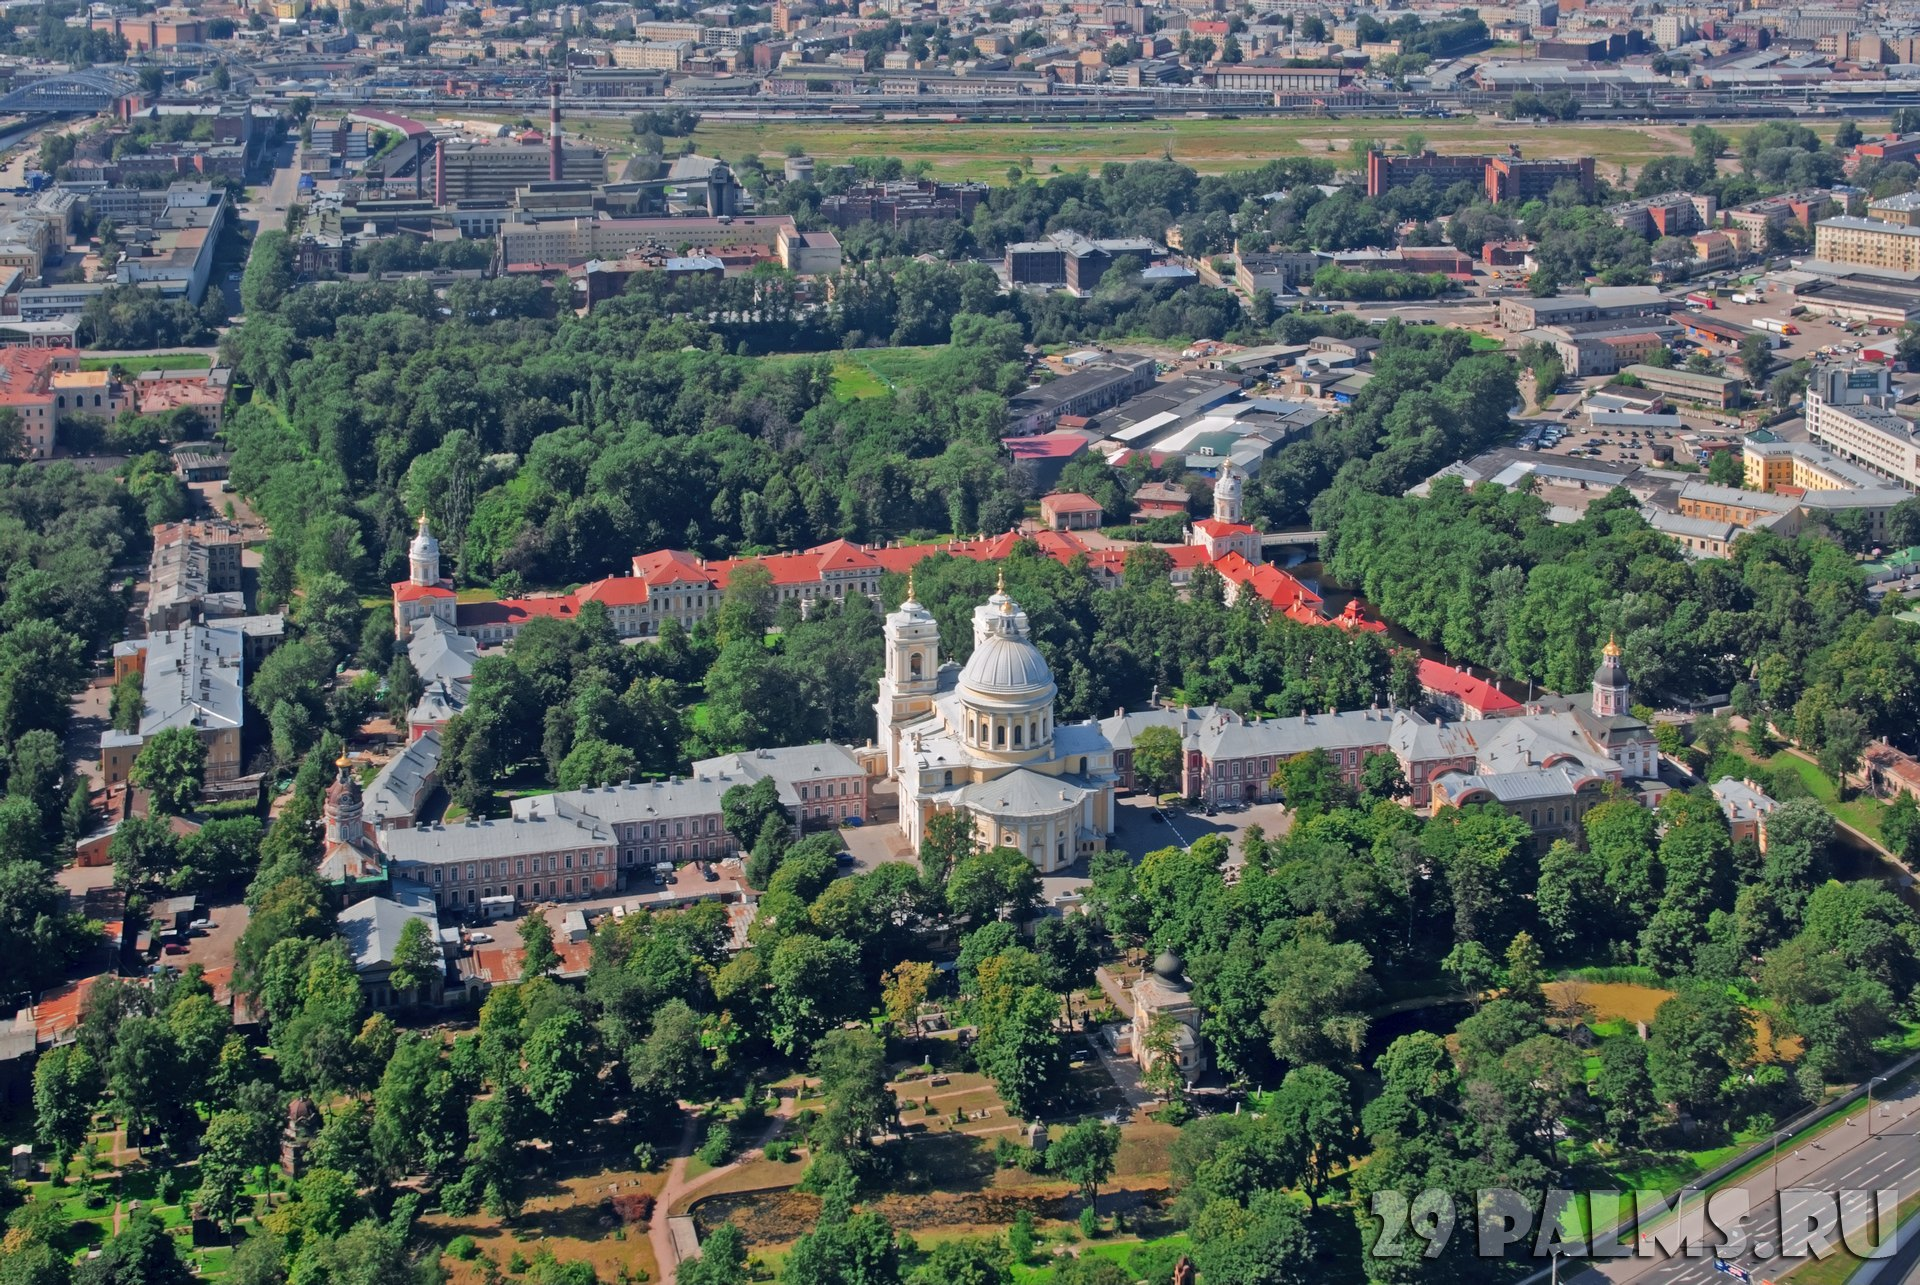 Россия. Санкт-Петербург. Свято-Троицкая Александро-Невская лавра. Aerial view of the Alexander Nevsky Lavra. St. Petersburg. Russia. Фото Meoita-Depositphoto